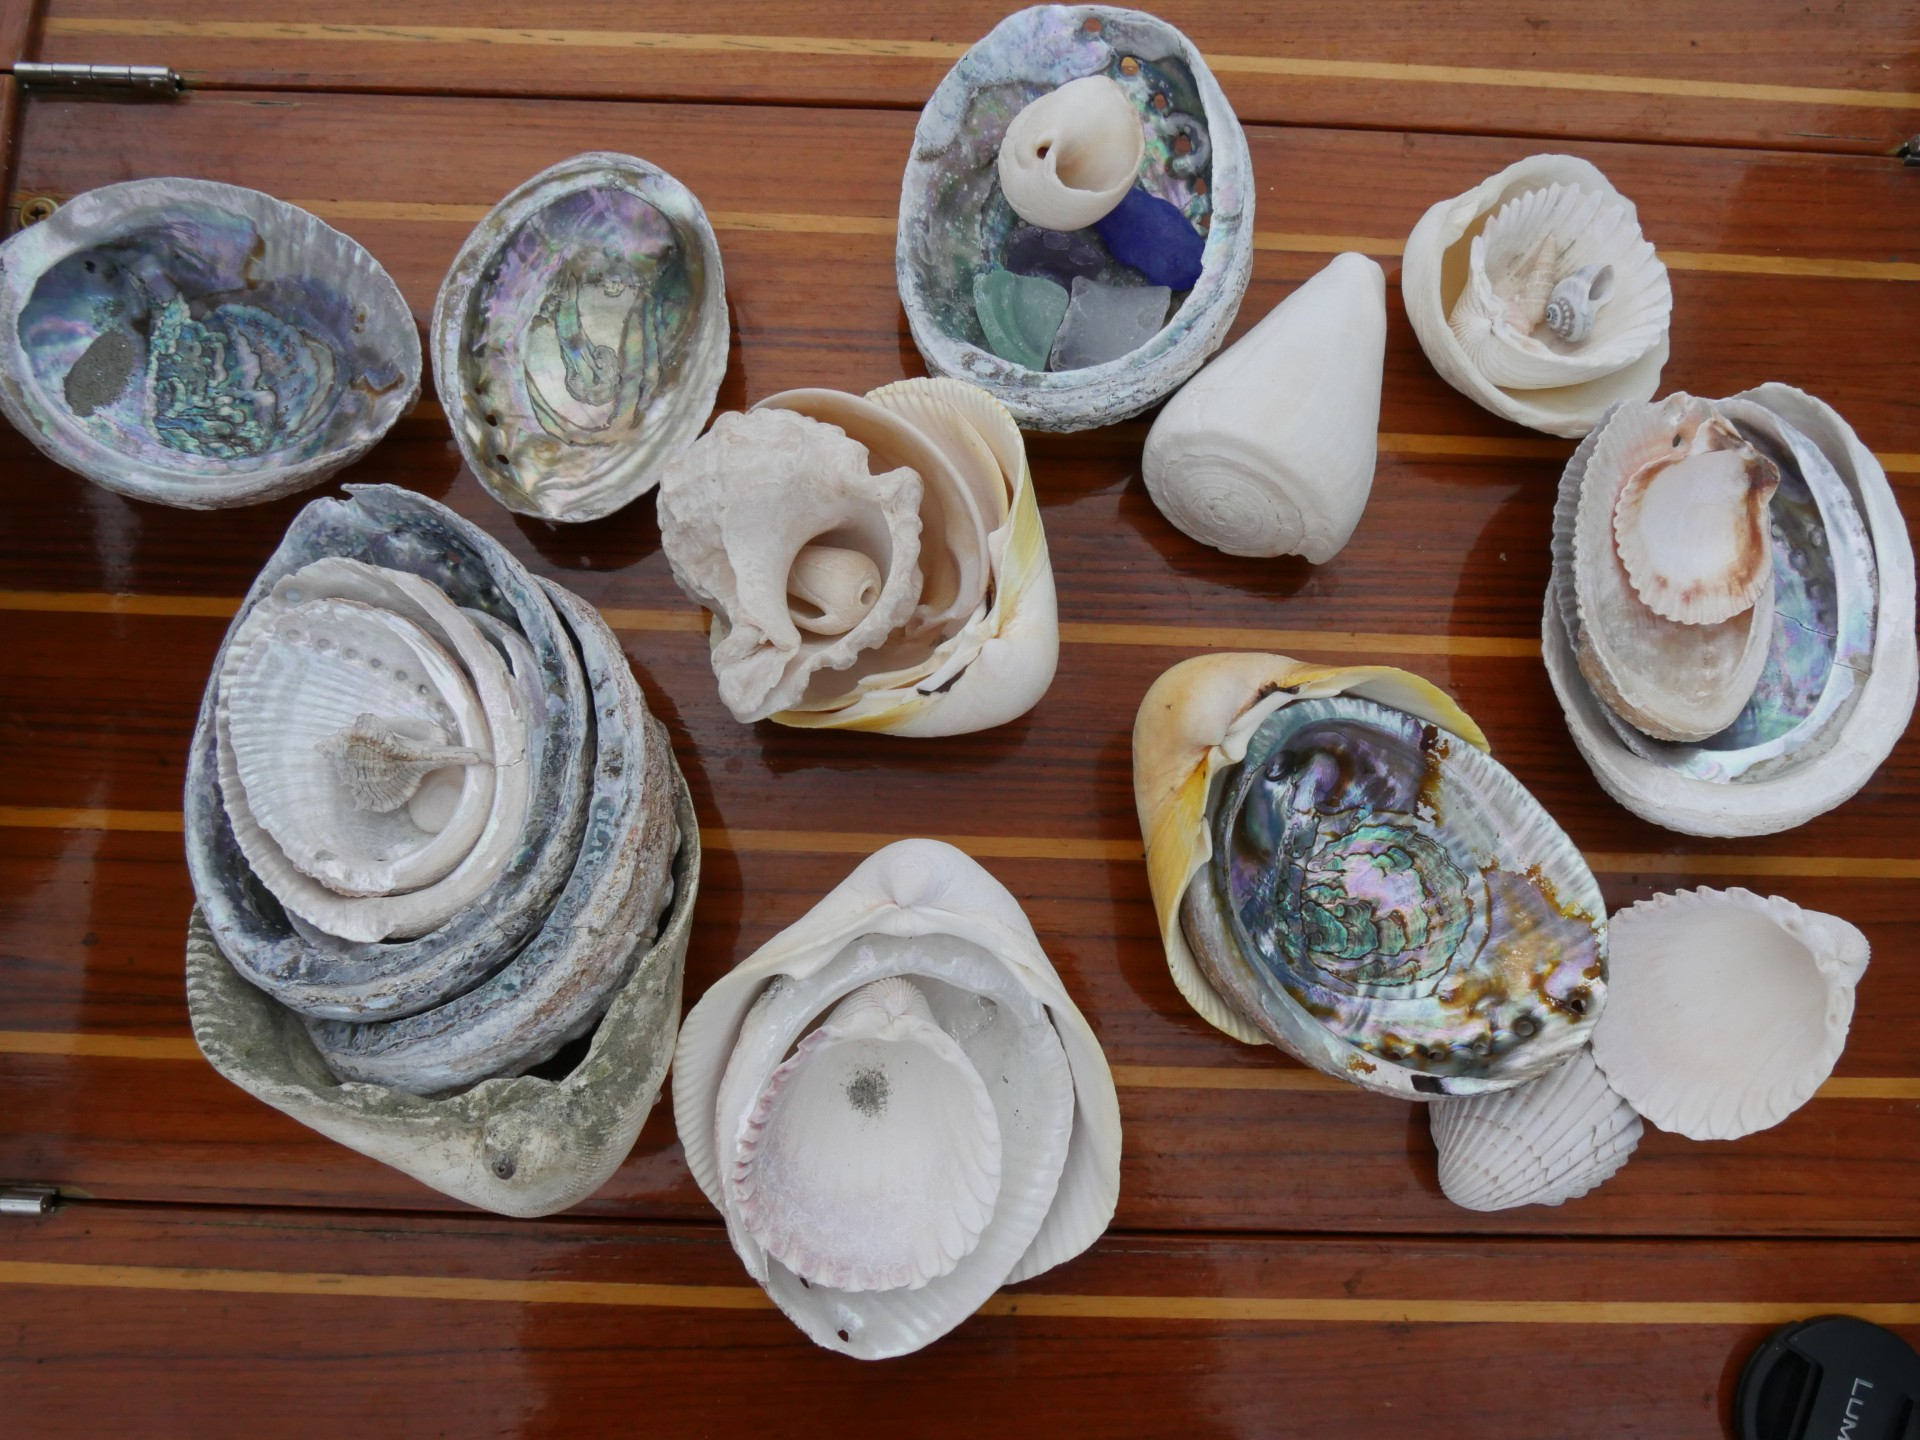 Abalone and others collected on the Pacific coast of Baja.